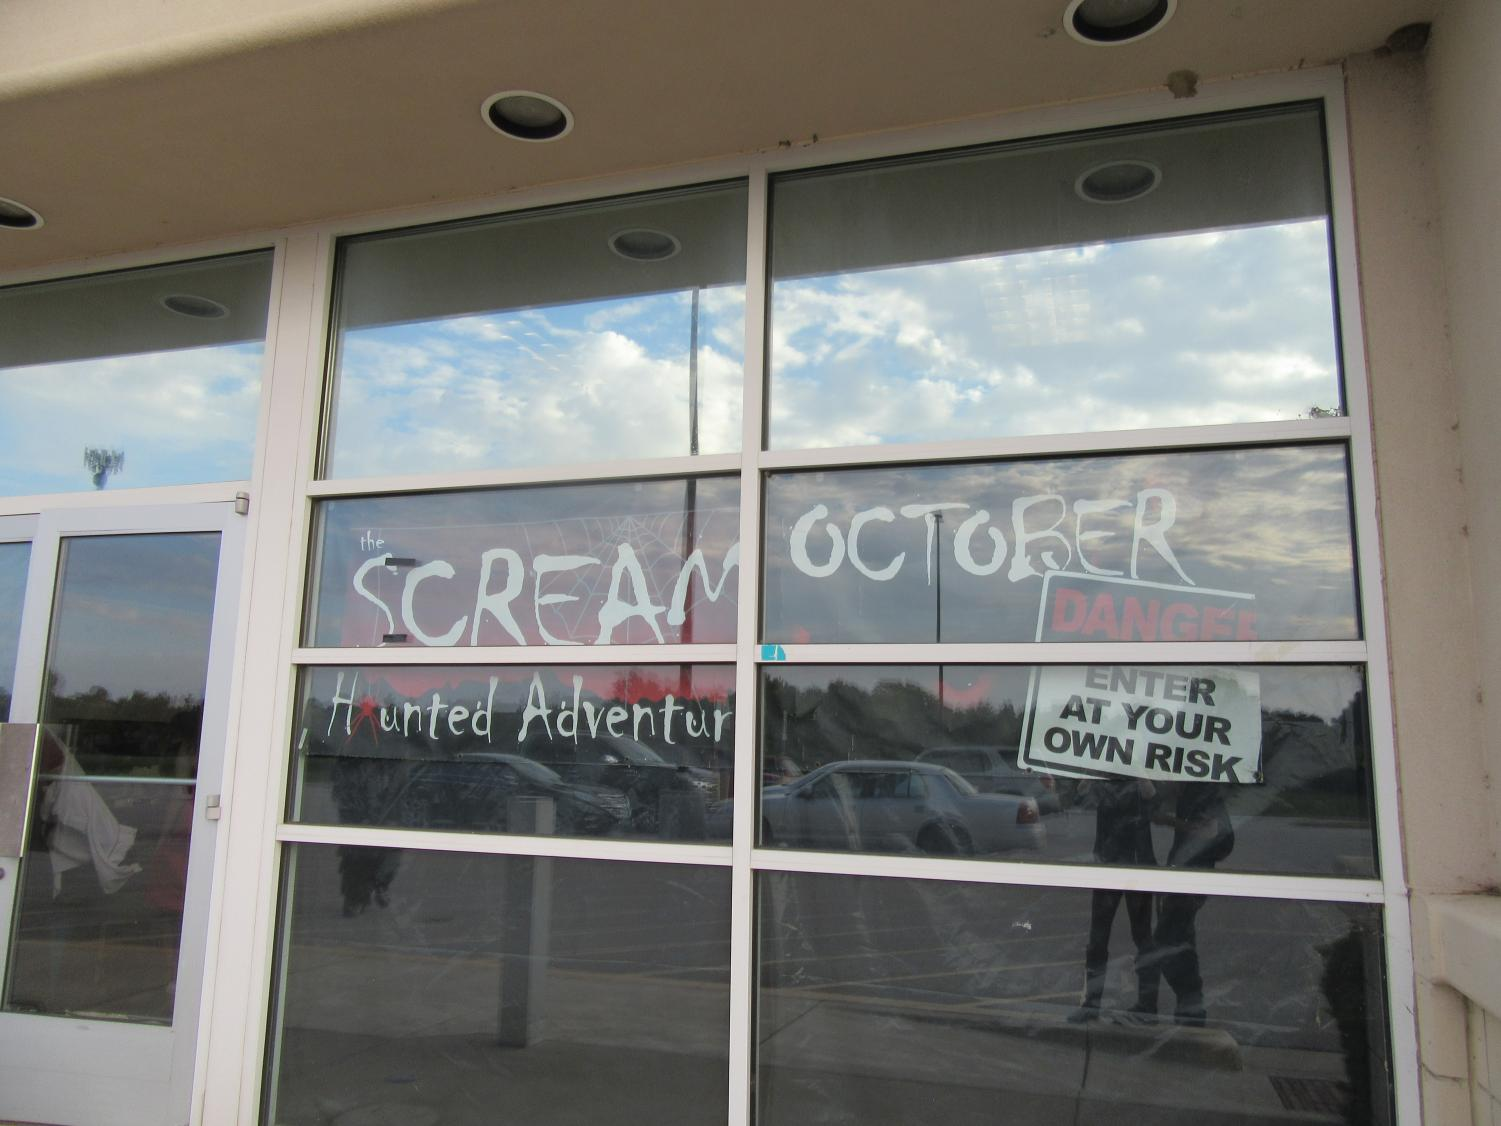 Scream! The Scream Haunted House staffs itself with volunteers. They are open each Friday and Saturday from 7-11 PM.  All funds help the Decatur Celebration.